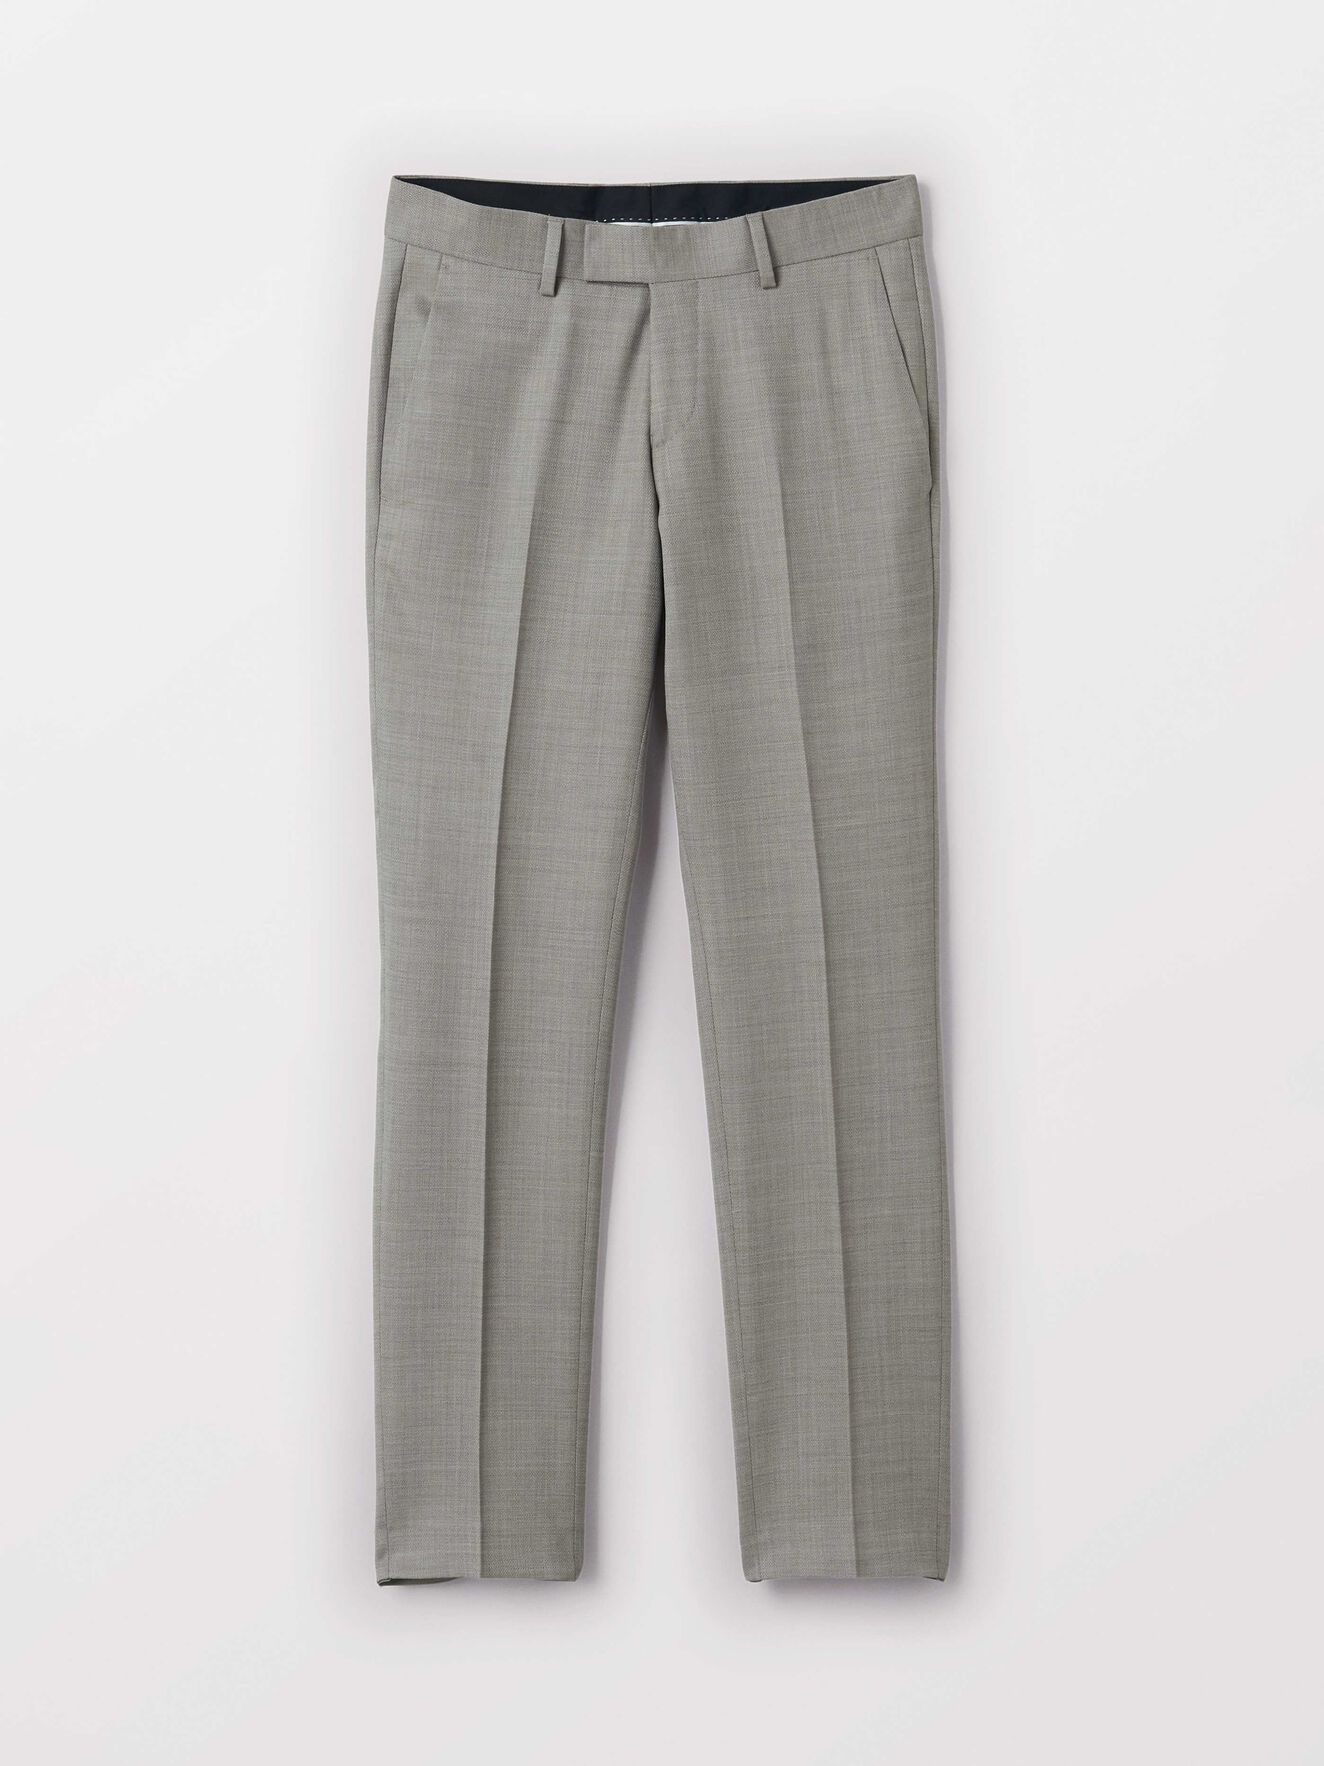 Tordon Trousers in Irish Cream from Tiger of Sweden